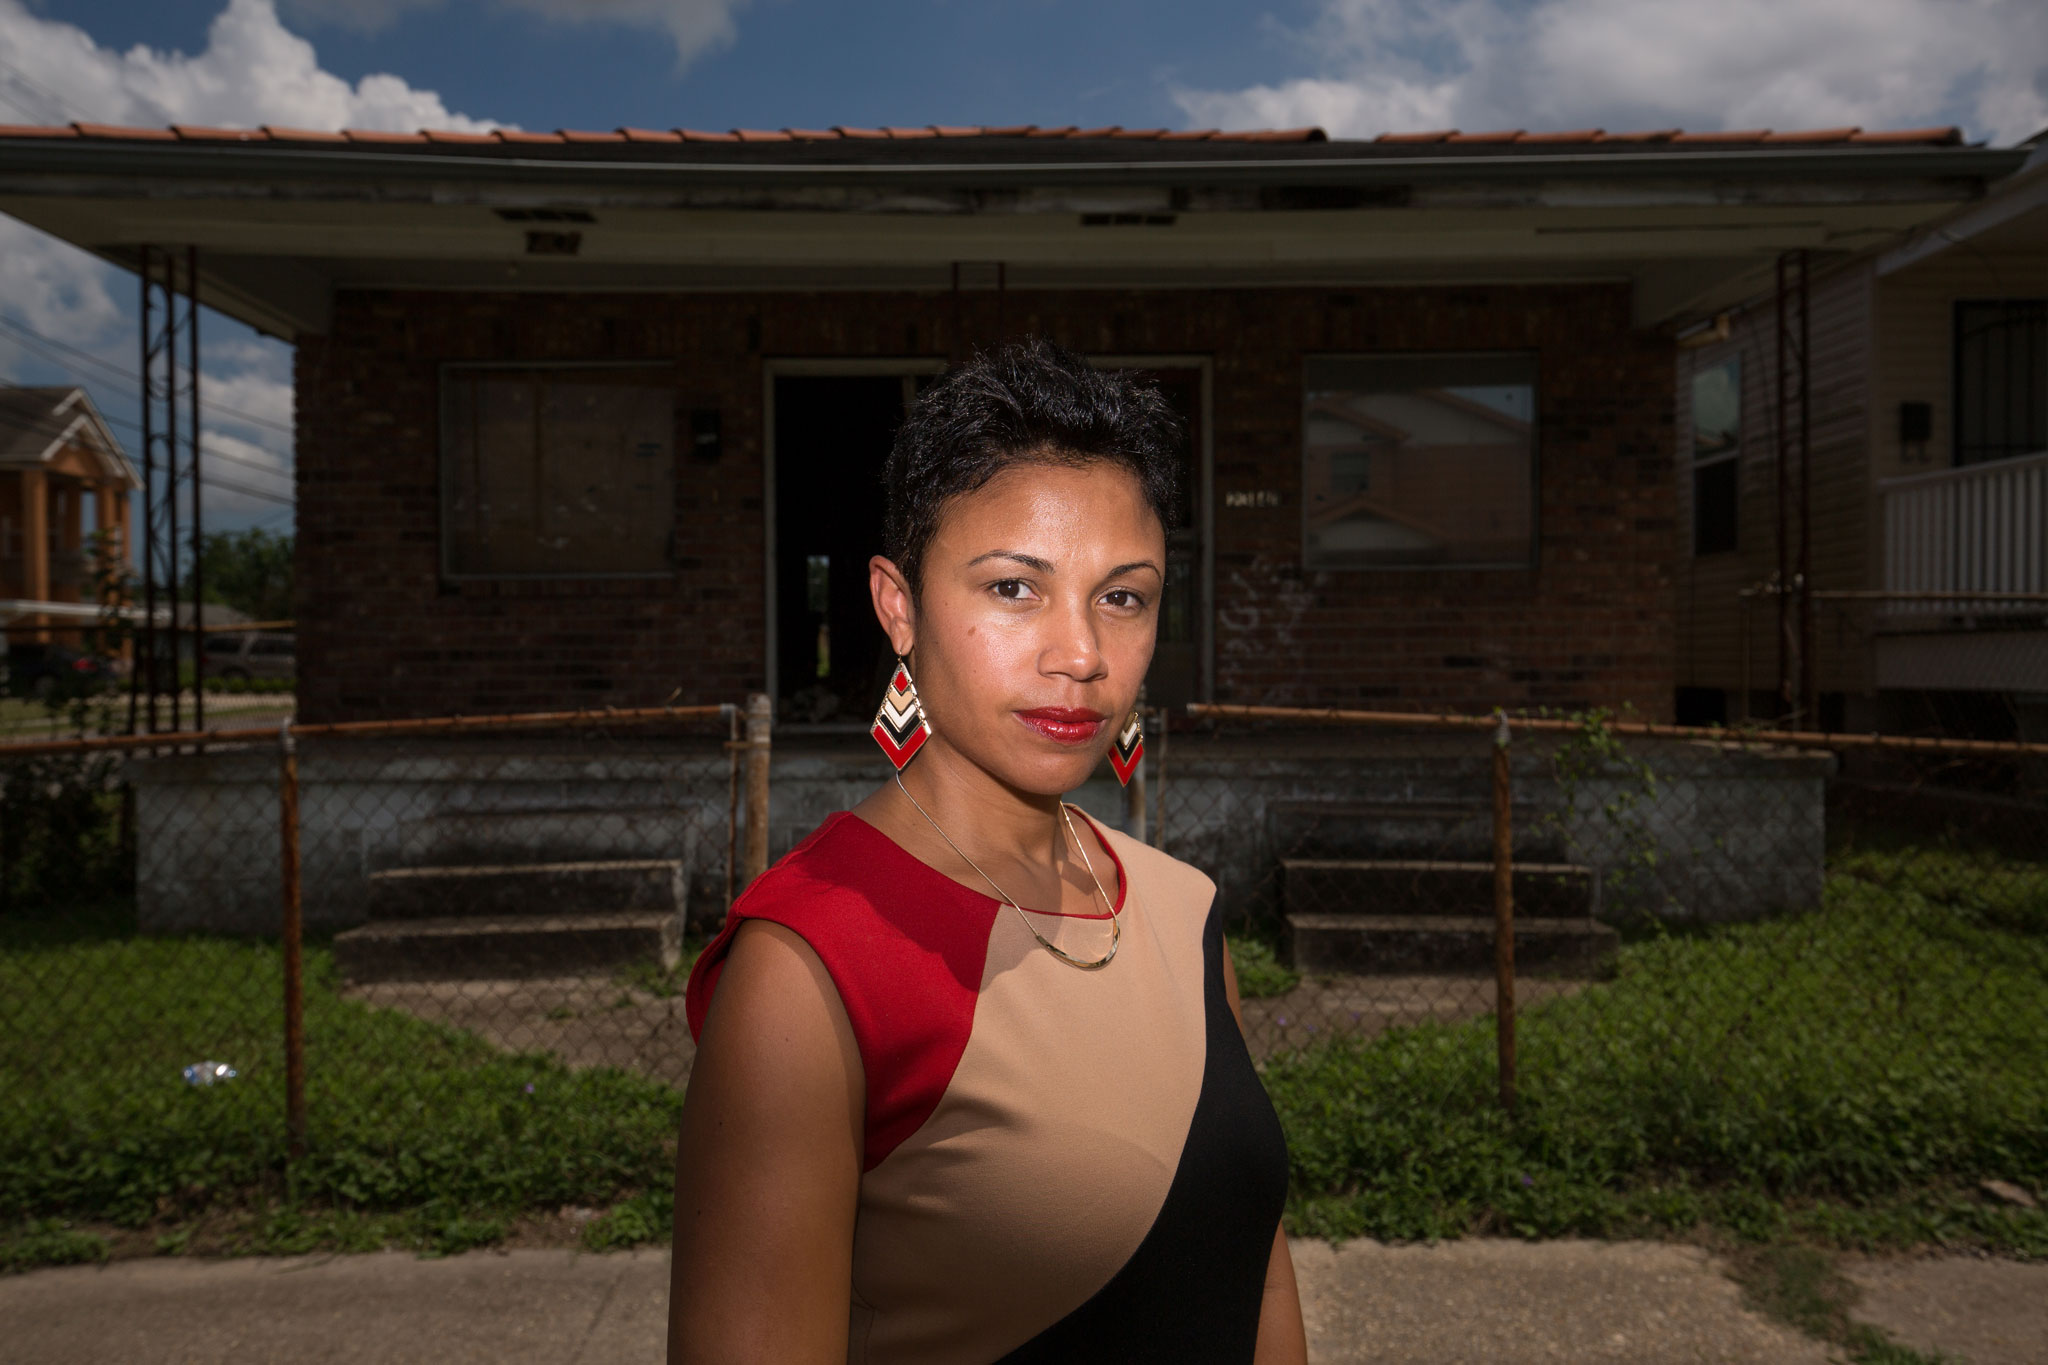 Erika McConduit-Diggs, president of the Urban League of Greater New Orleans, in front of a home in the Upper Ninth Ward.